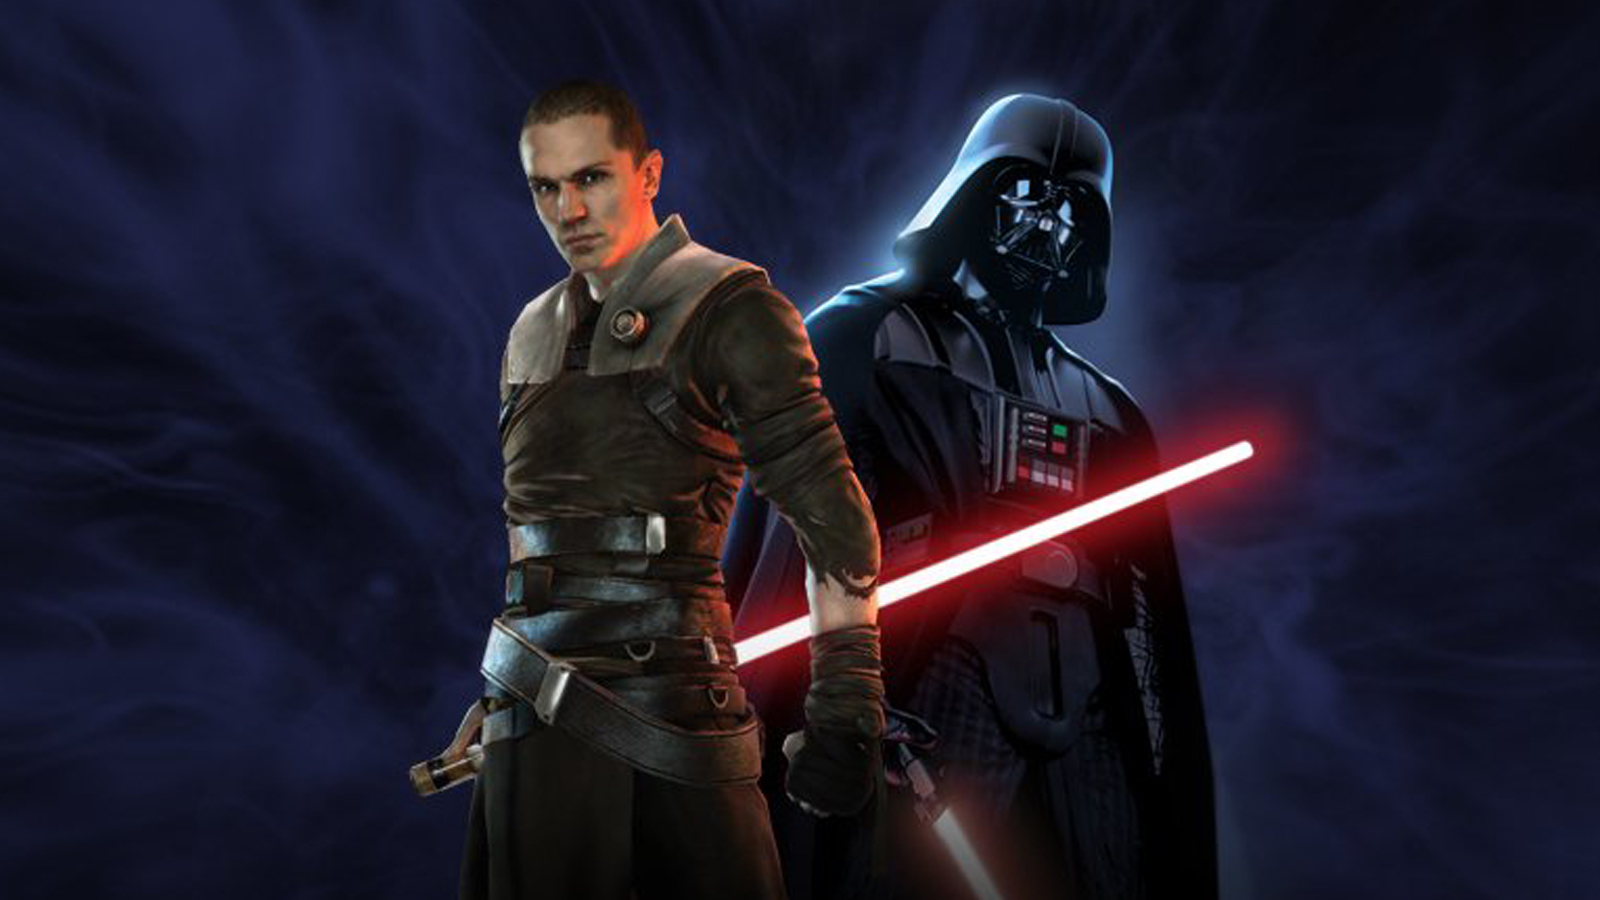 Star Wars Jedi Fallen Order May Not Have Multiplayer